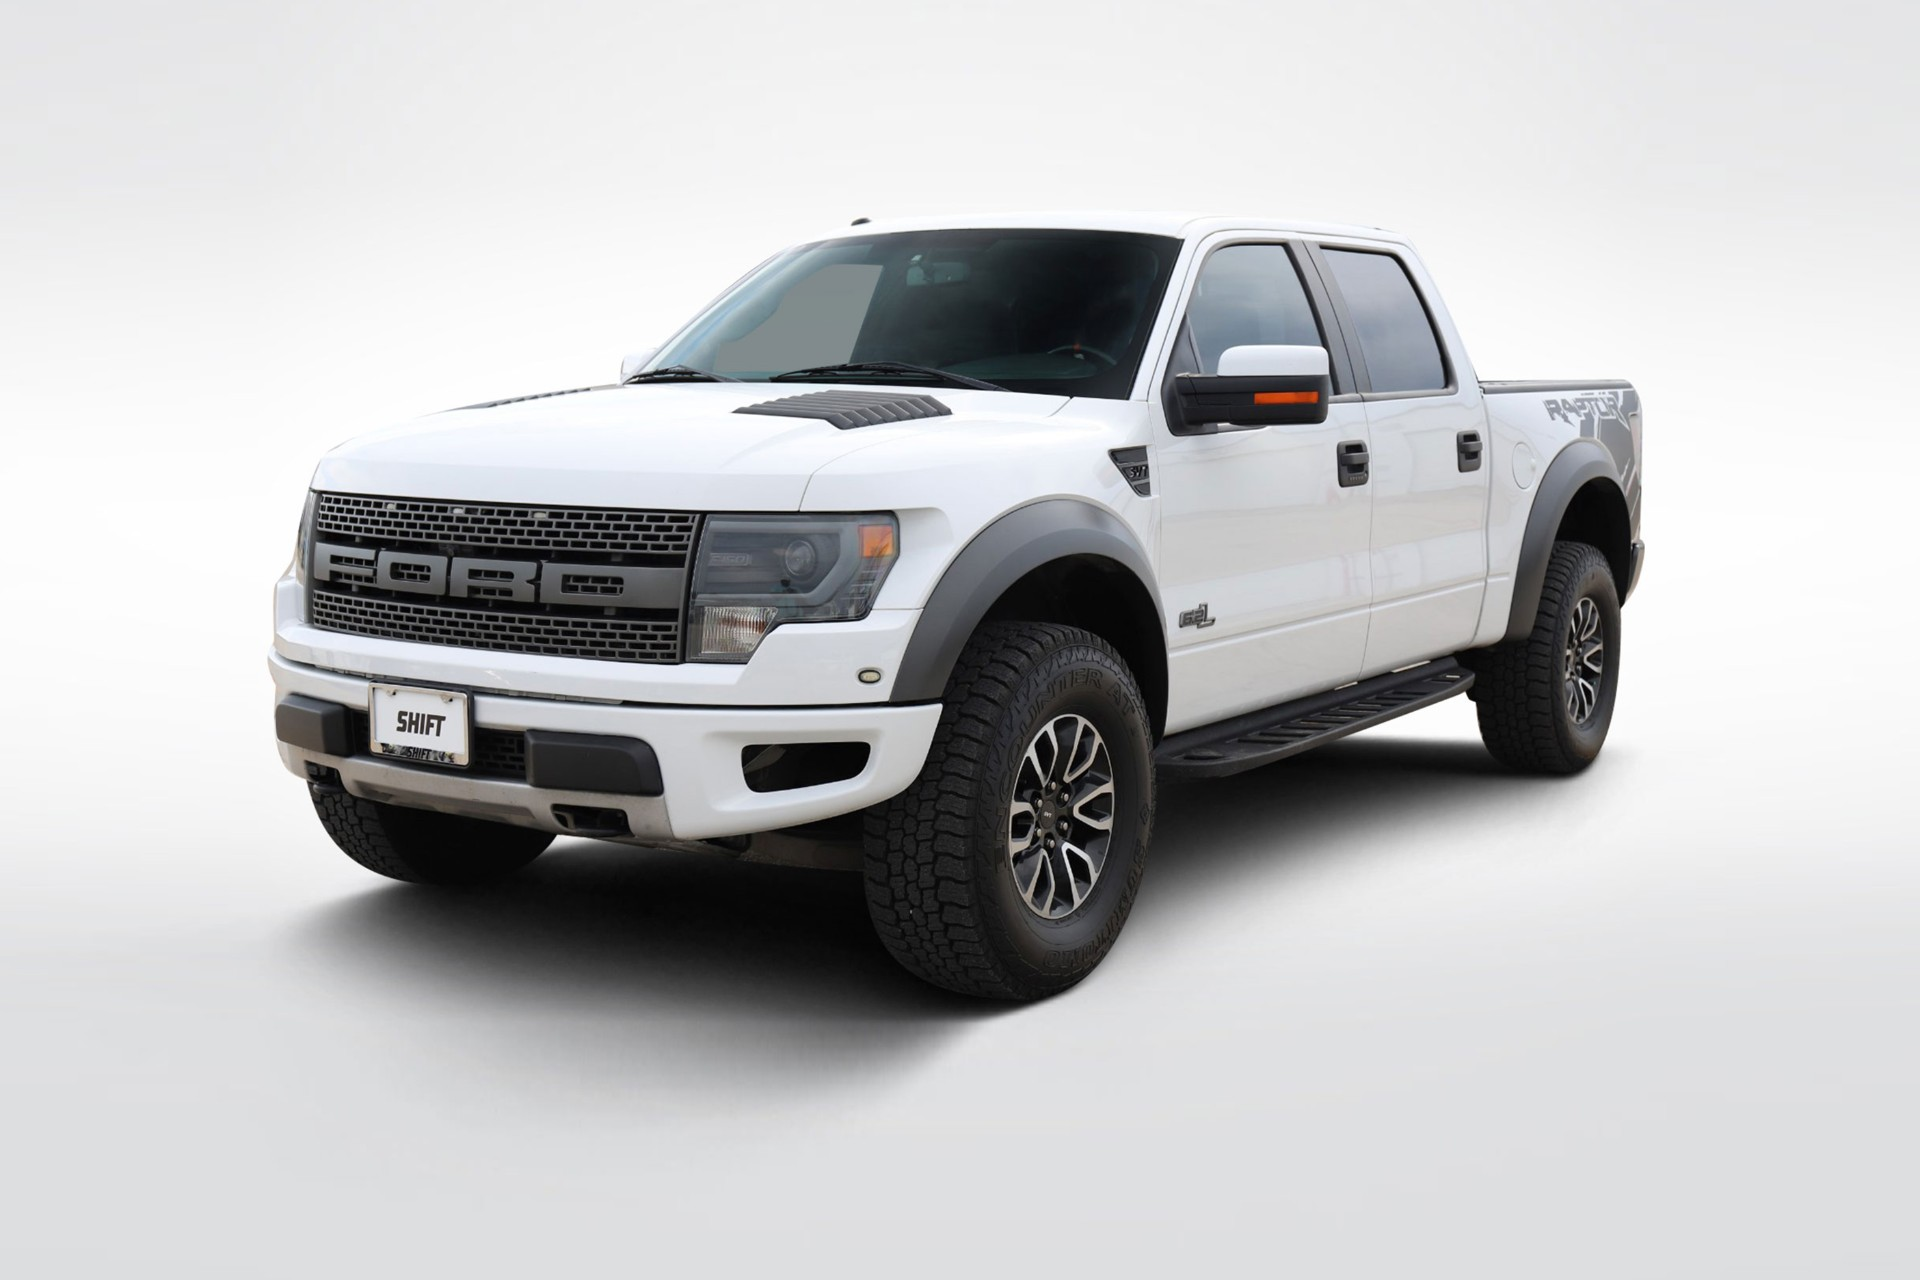 2013 Ford F-150 SVT Raptor (from $38,950)